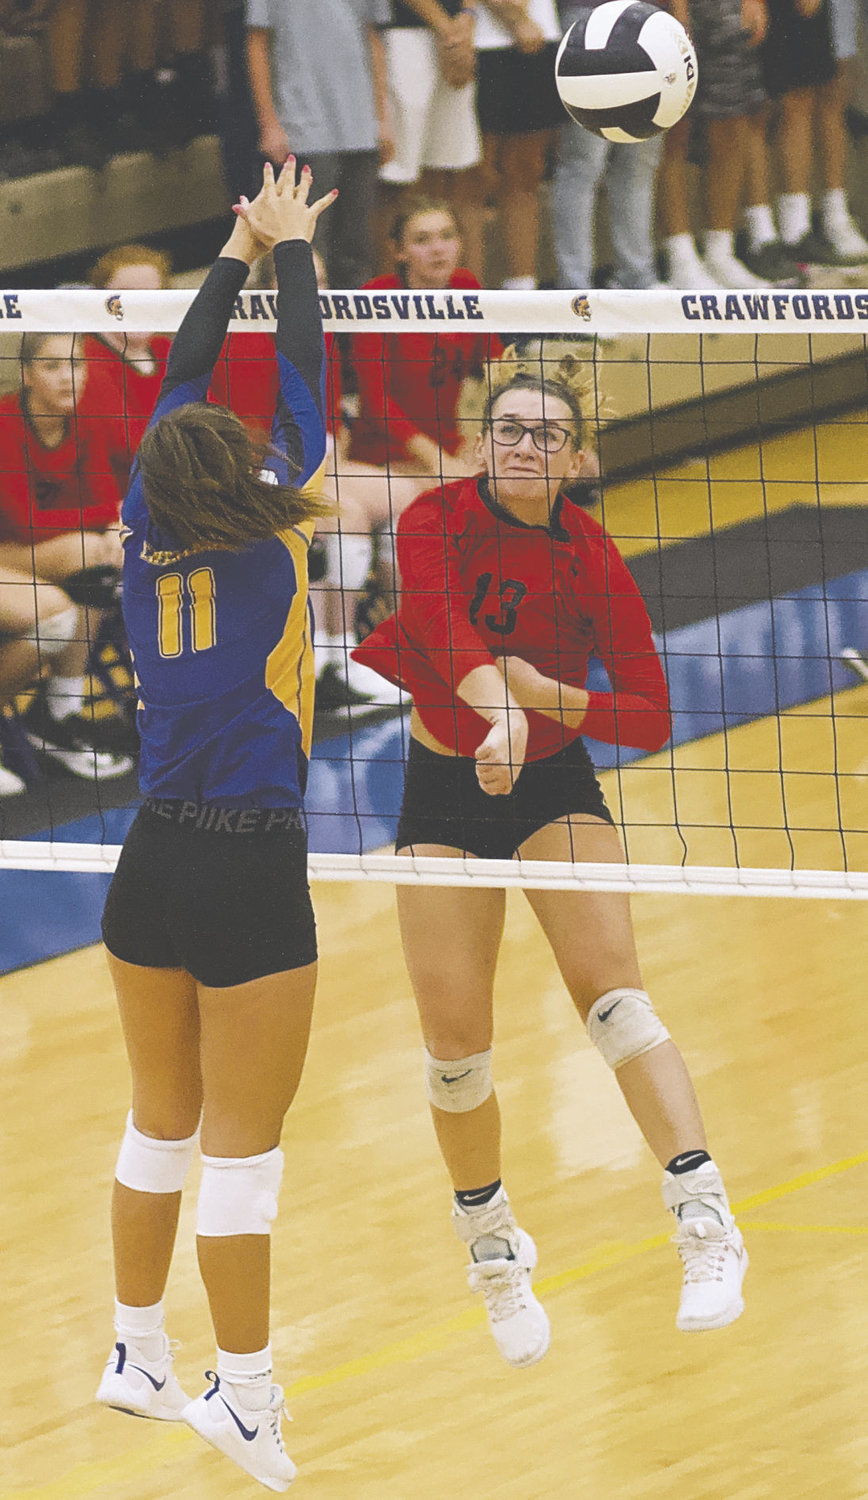 Southmont's Kaley Remley hits over Crawfordsville's AlyxBannon in a game earlier this season.